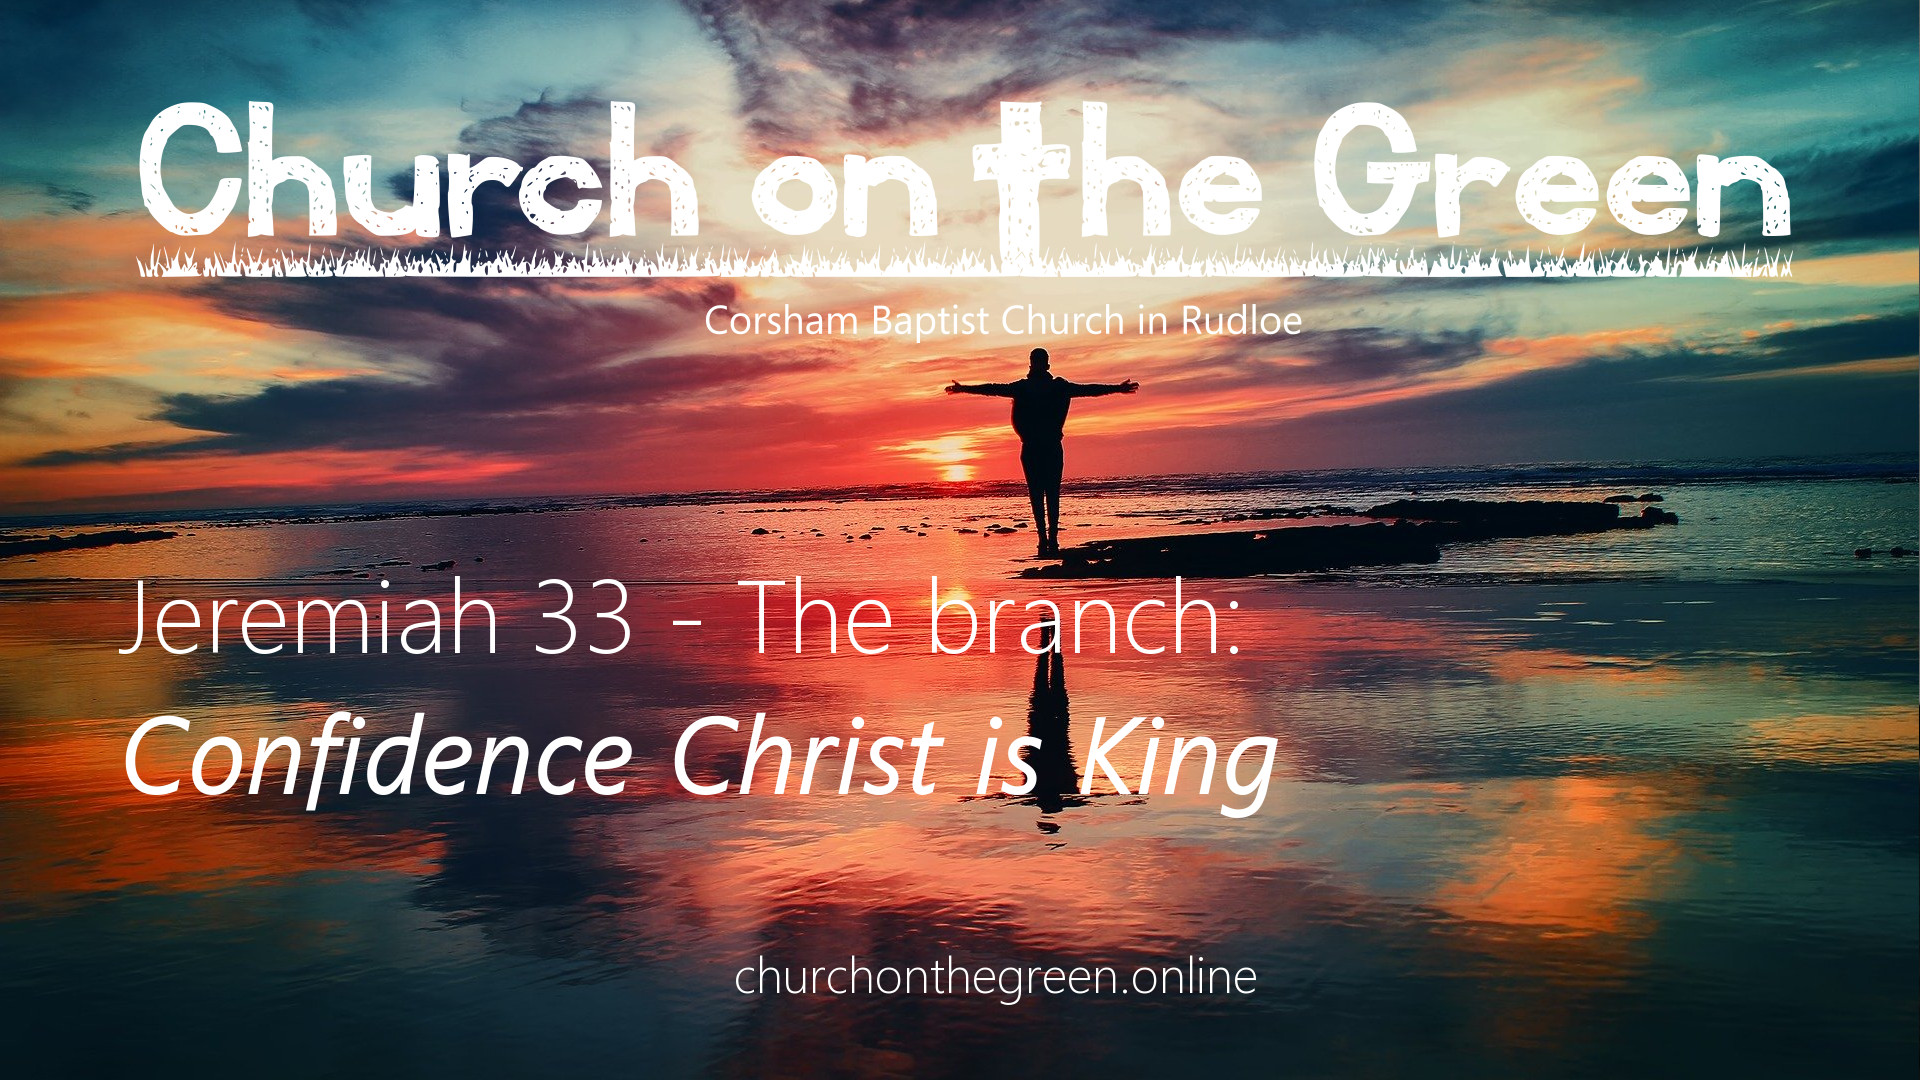 Jeremiah 33: 14-26 : The branch – Confidence Christ is King